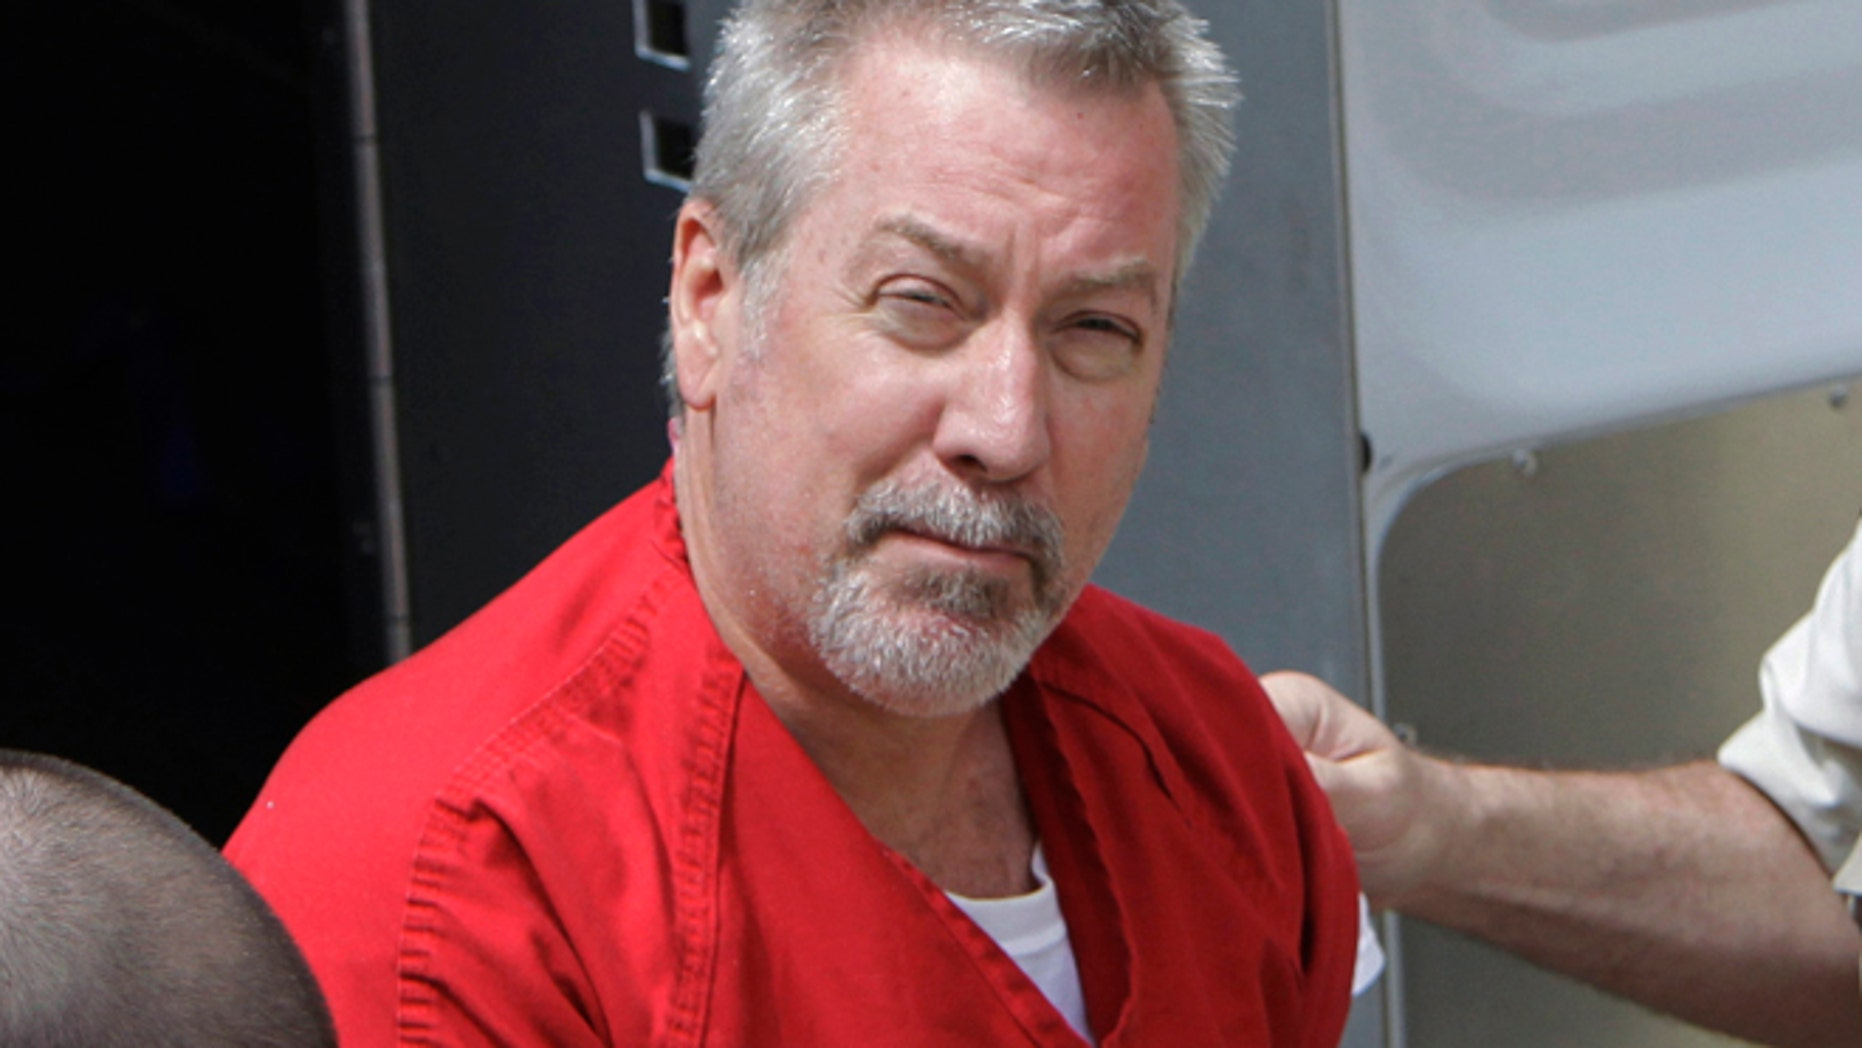 FILE - In this May 8, 2009 file photo, former Bolingbrook, Ill., police officer Drew Peterson arrives for court in Joliet, Ill. Jury selection is set to begin Friday, May 20, 2016, in Chester, Ill., in the murder-for-hire trial of Peterson, who is accused of plotting to kill the prosecutor who put him behind bars in his third wife's death.